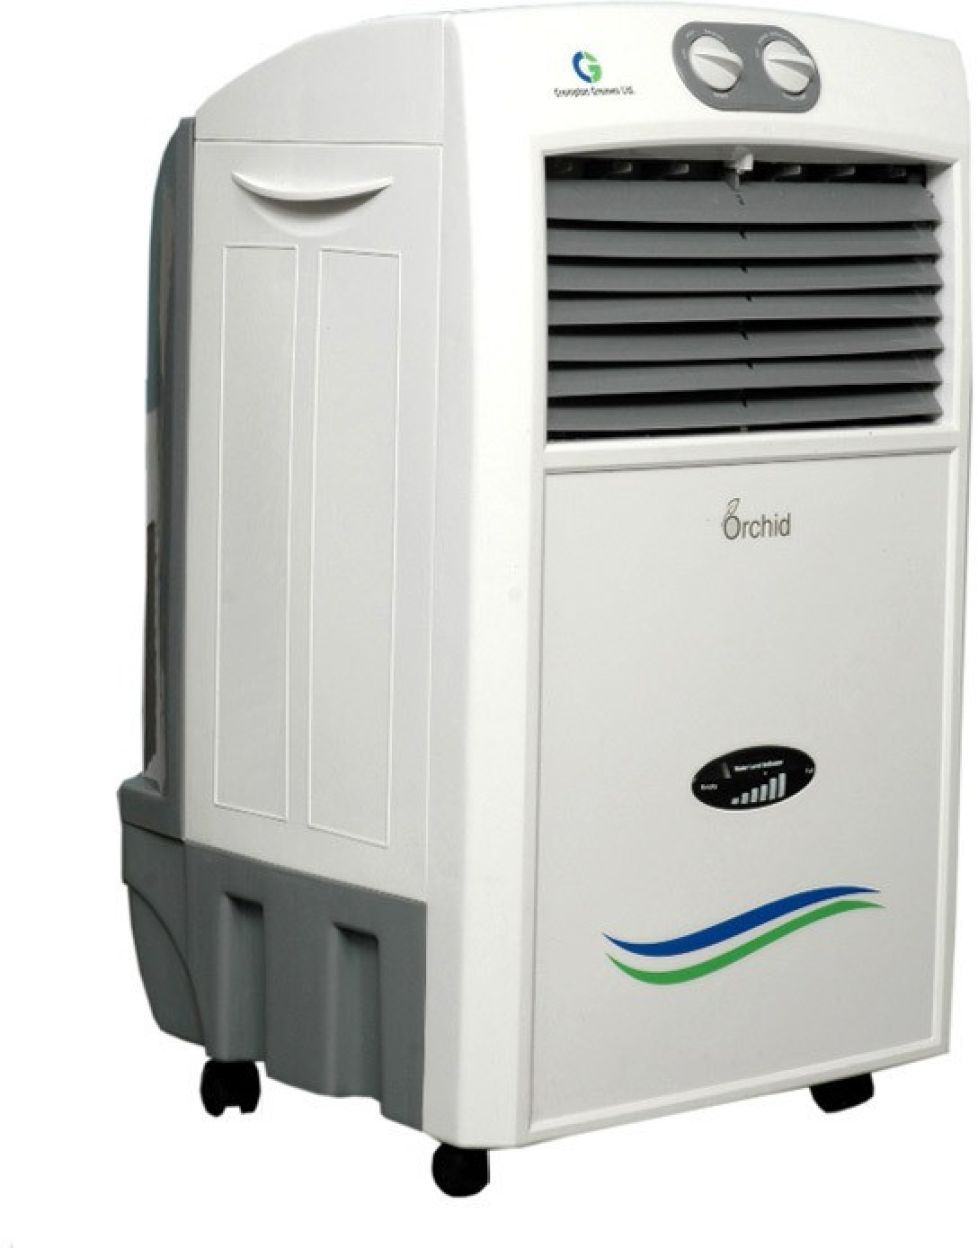 Crompton Greaves Orchid 17L Air Cooler